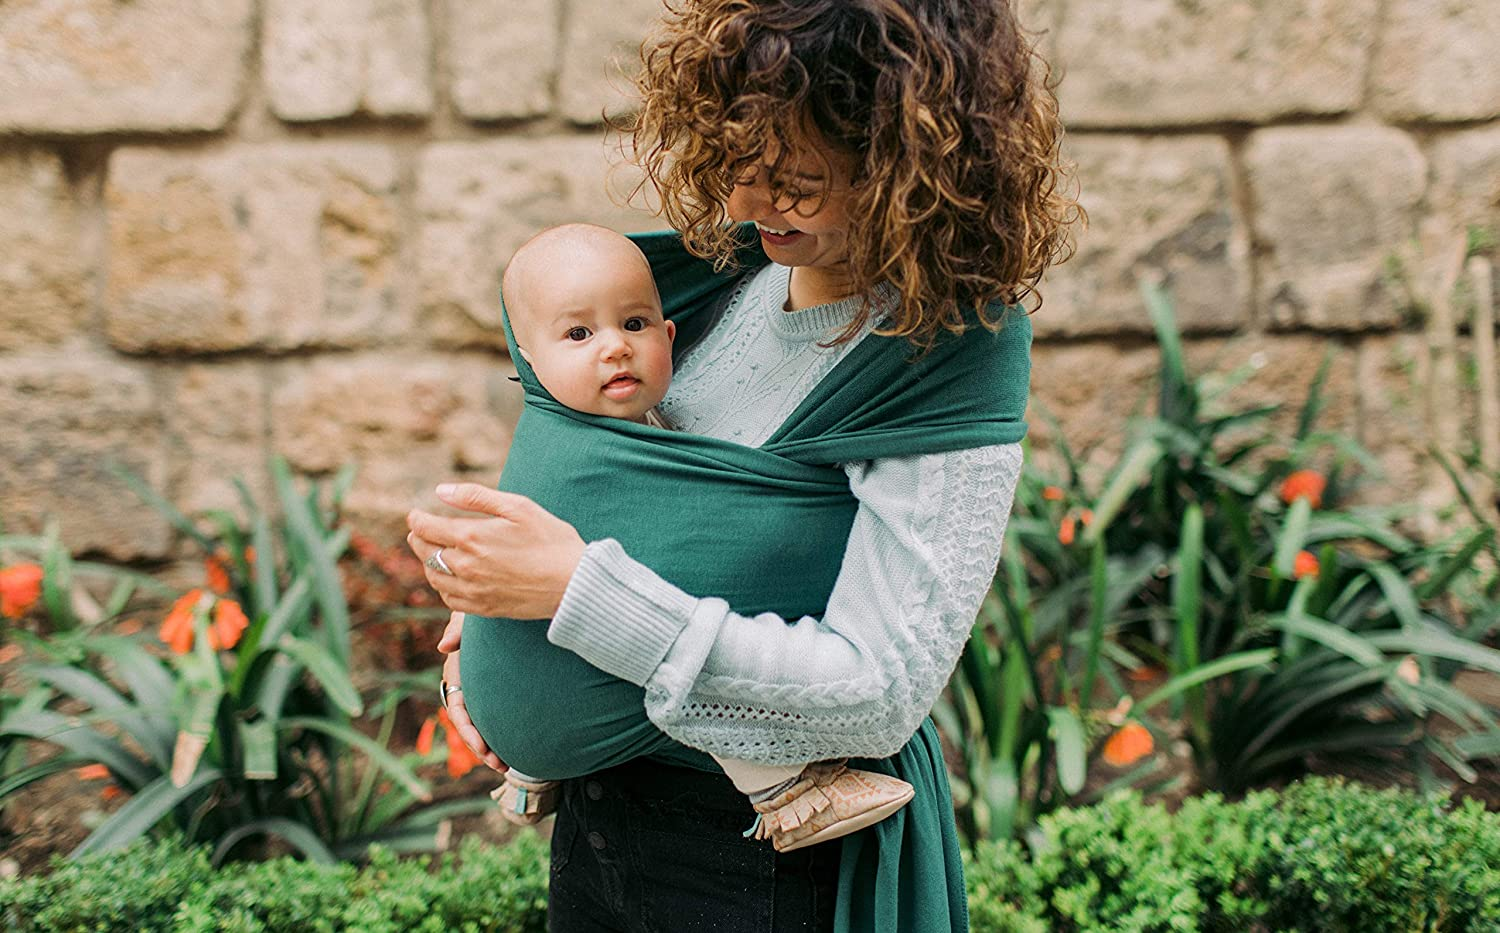 Boba Wrap Baby Carrier Peach Sorbet Original Stretchy Infant Sling Perfect for Newborn Babies and Children up to 35 lbs